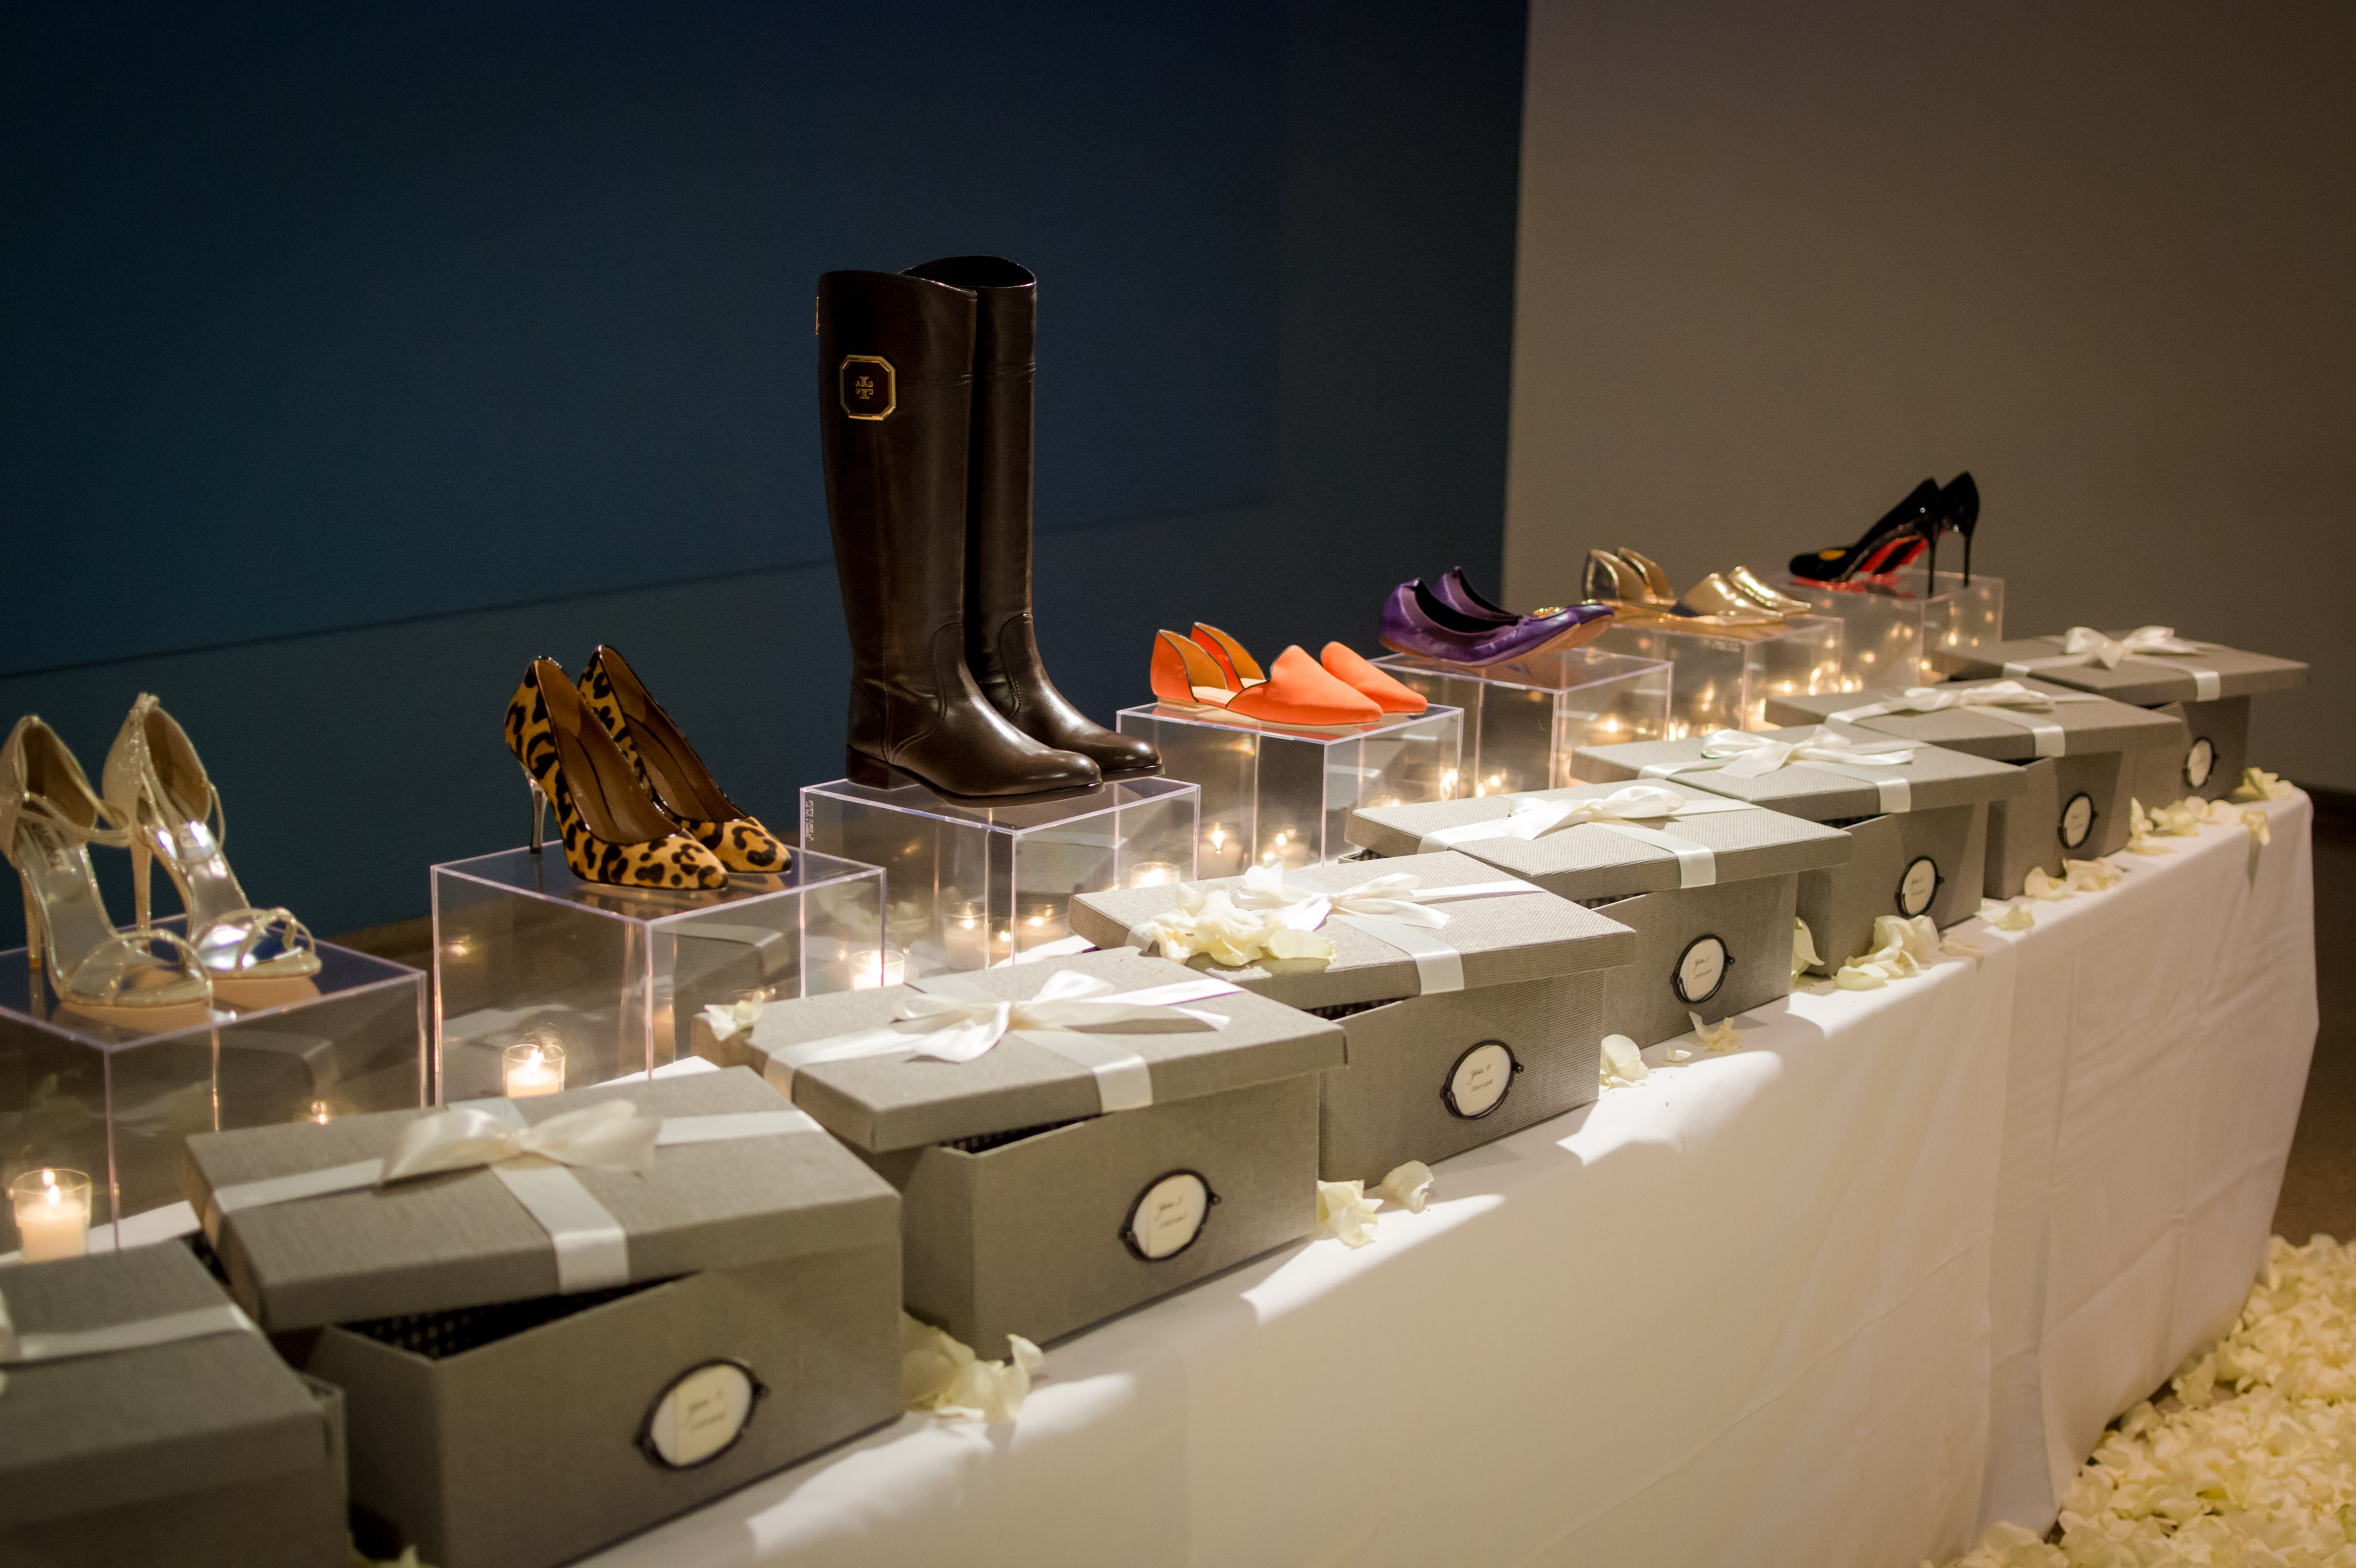 Image 16 of Kelcie and Bo | A Shoe Lover's Dream Proposal